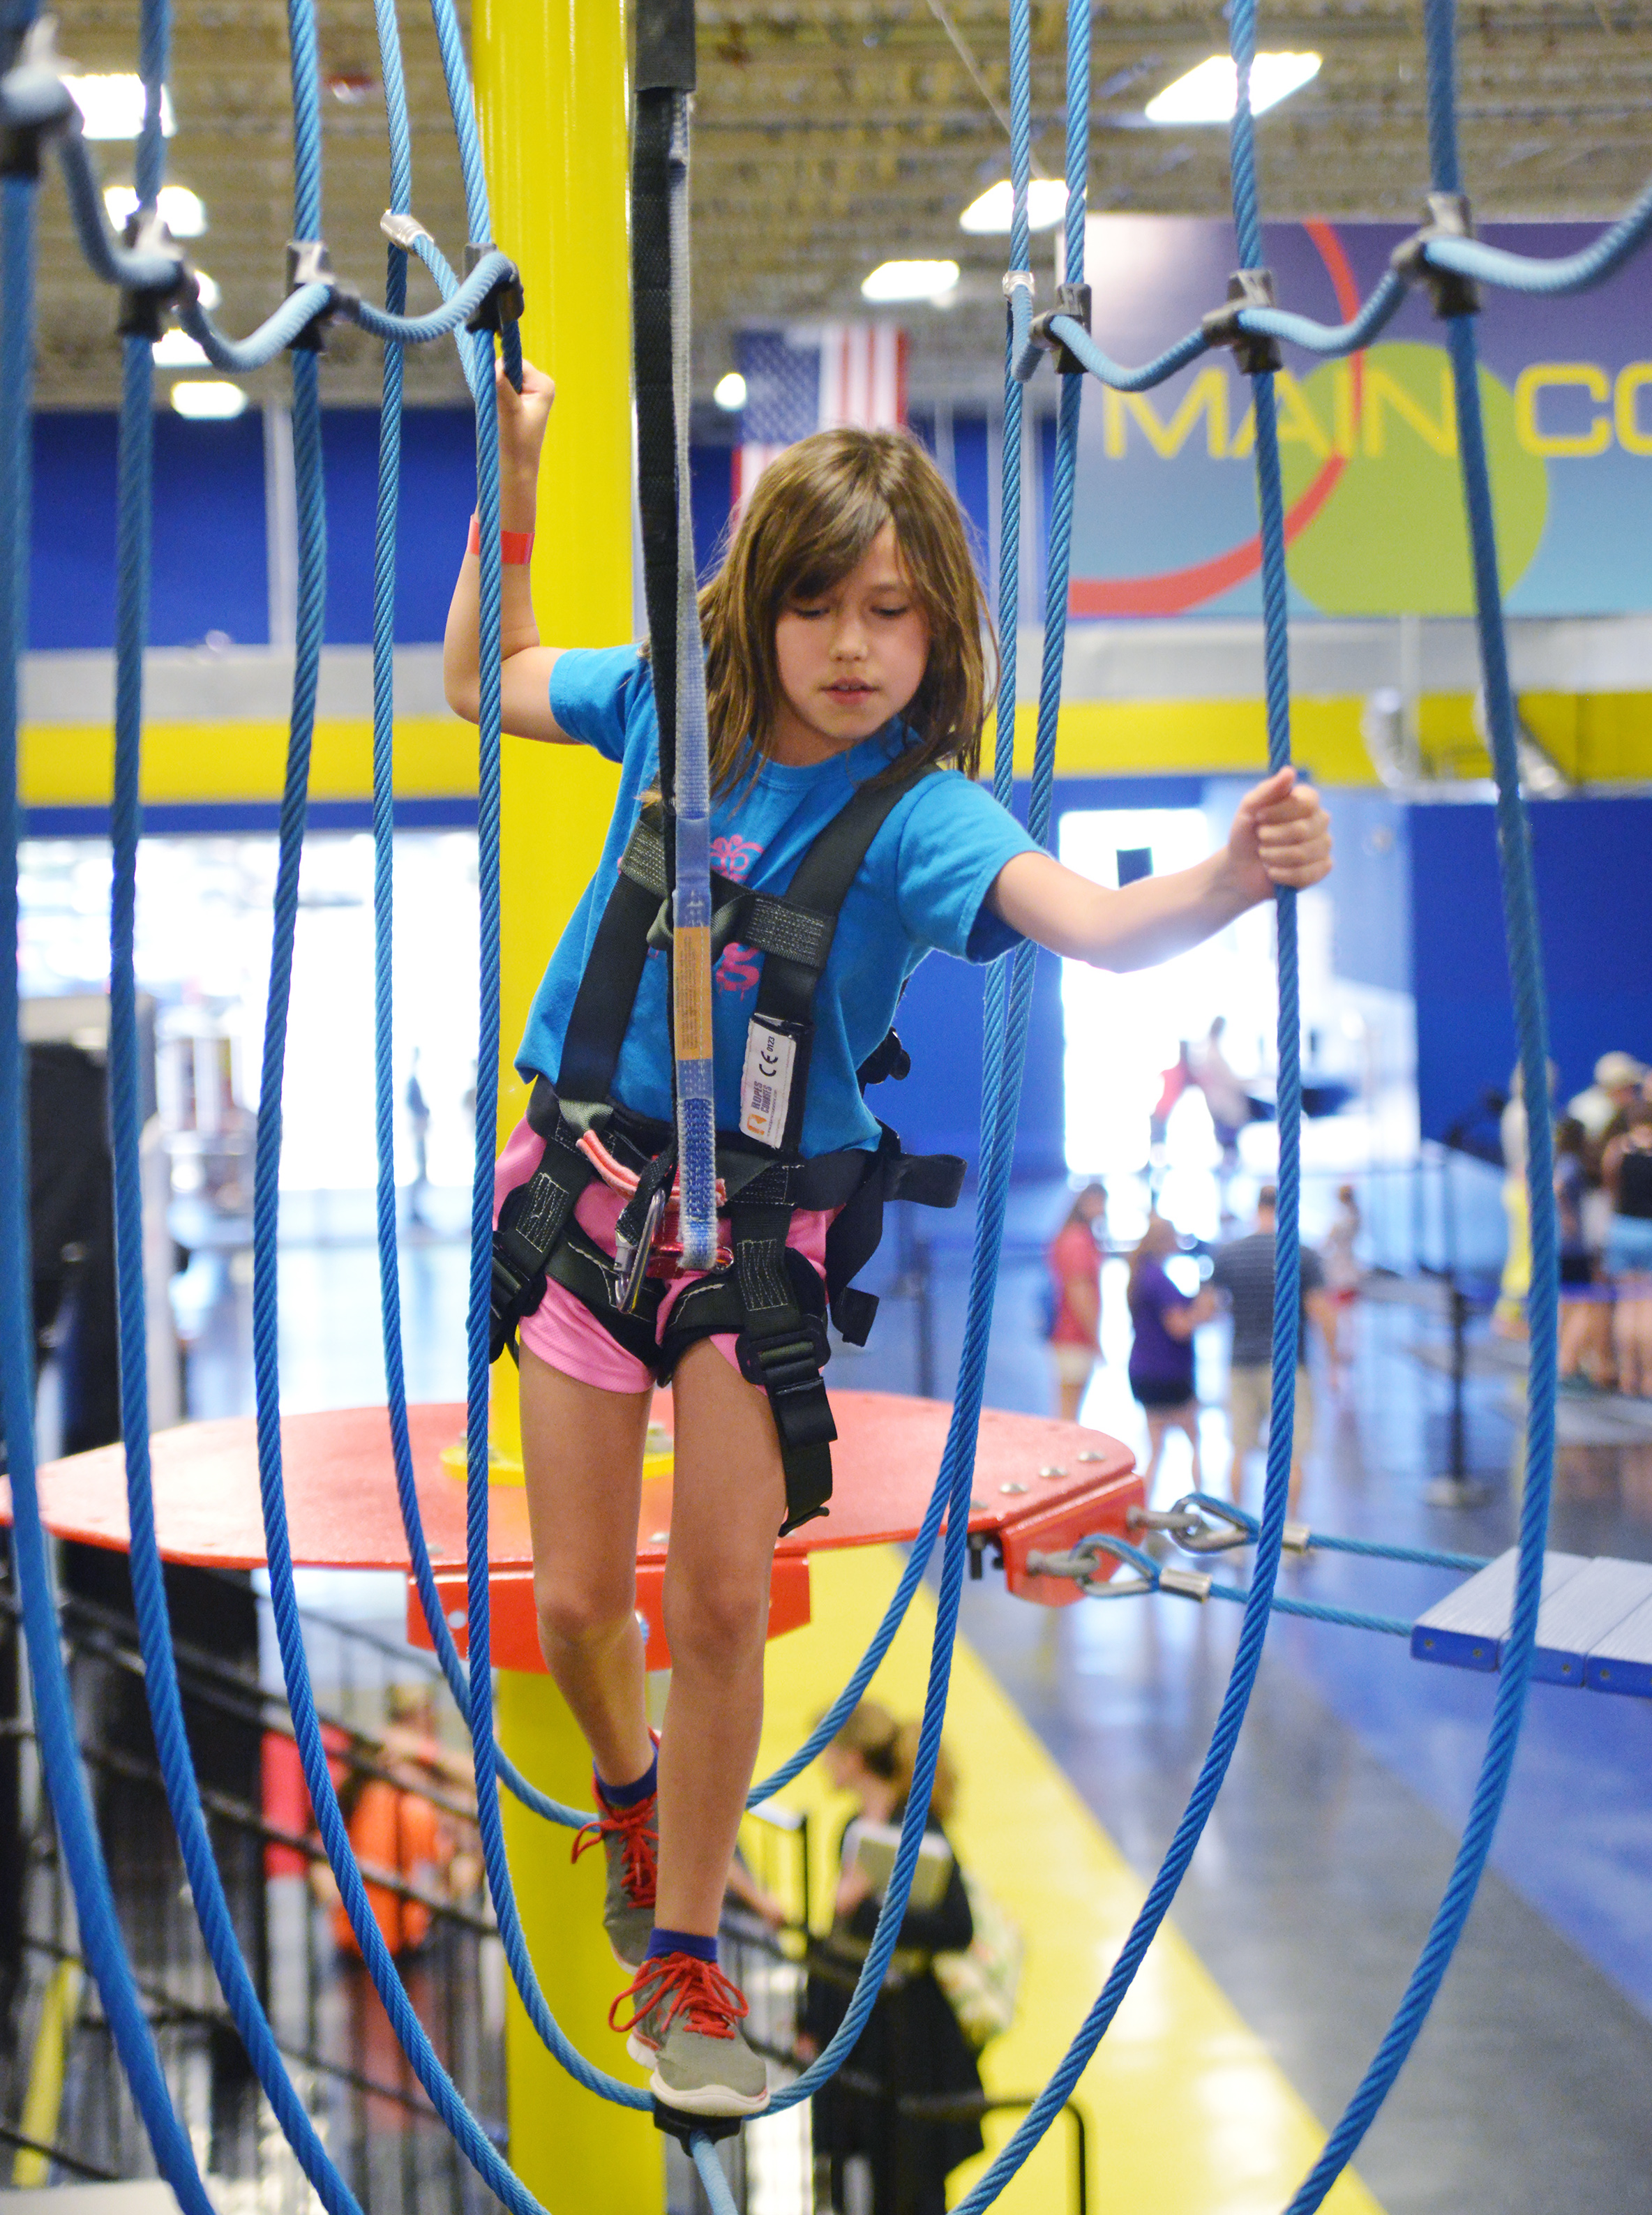 High Ropes Course For Kids | Charlotte, NC | Sky High Sports